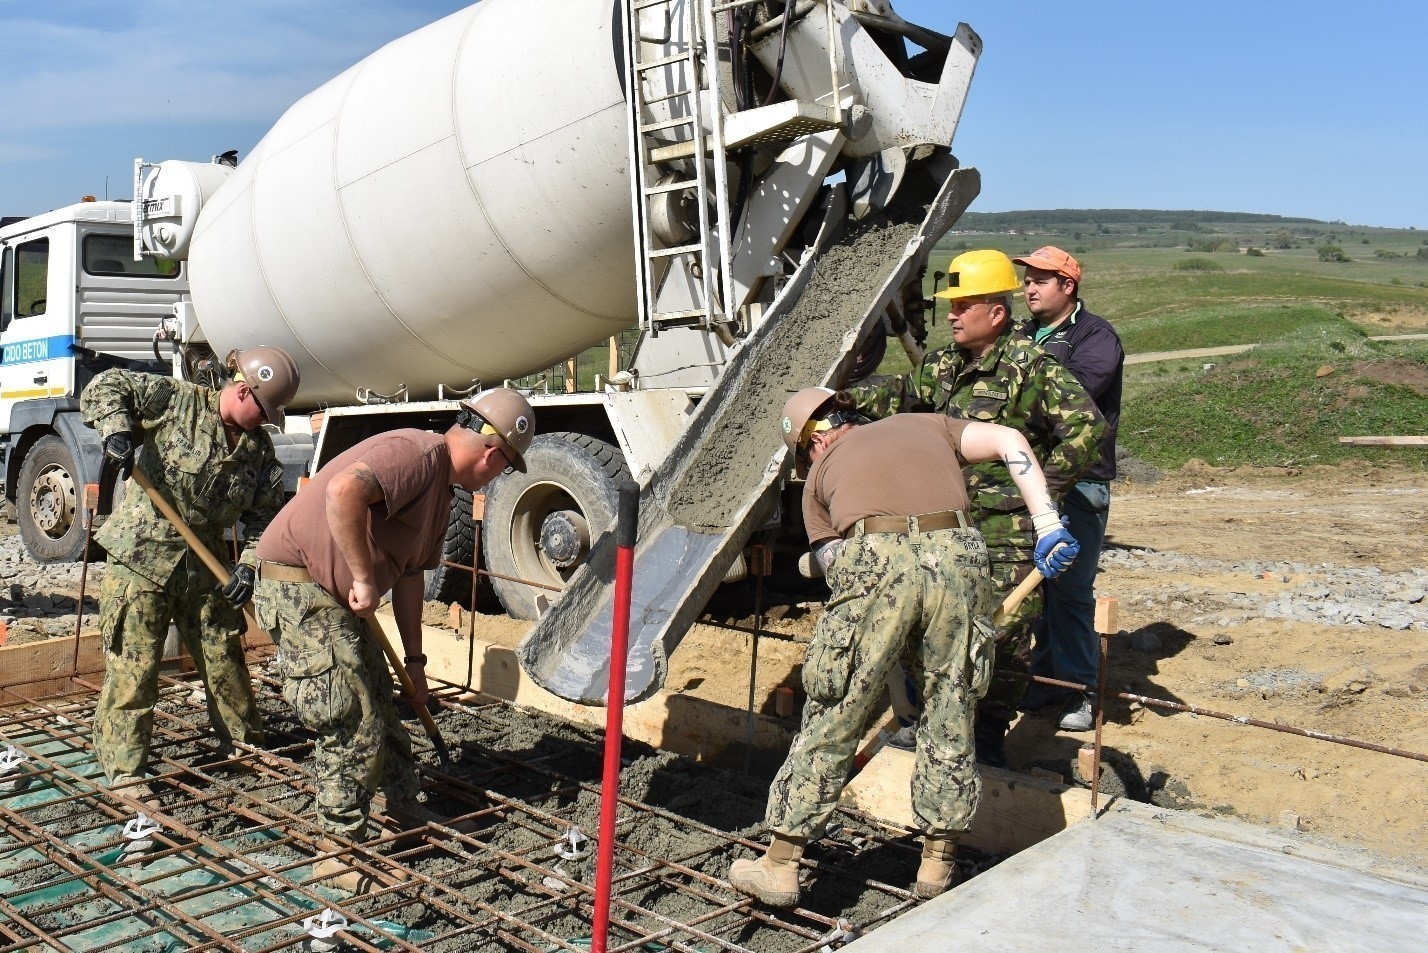 Builder 3rd Class Amanda Bryla, Builder 3rd Class Alexis Franklin, and Steel Worker 2nd Class Zachary McClellan of the Naval Mobile Construction Battalion 1 work with a soldier from the Romanian 10th Engineer Brigade emplace a concrete pad for an Operations and Storage Building as a part of Resolute Castle 17 at Joint National Training Center, Cincu, Romania. Resolute Castle 17 is an exercise strengthening the NATO alliance and enhancing its capacity for joint training and response to threats within the region.